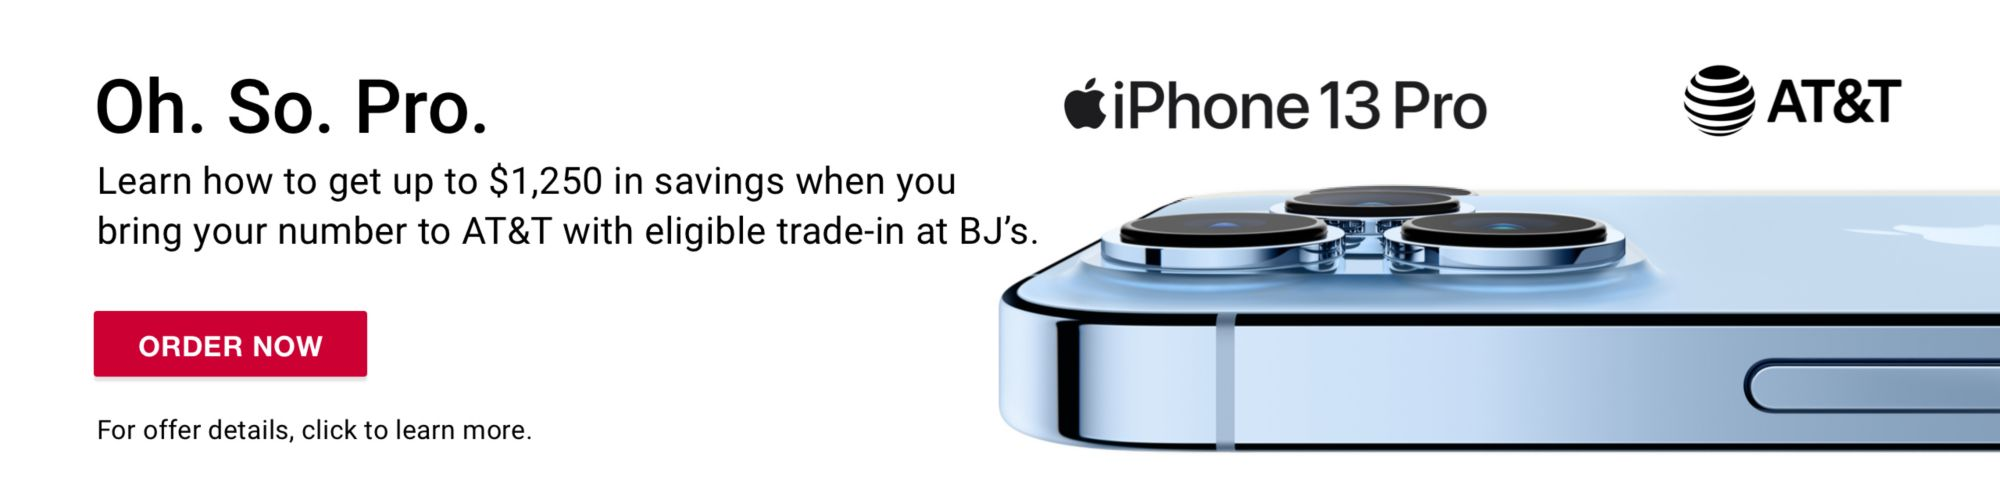 Oh. So. Pro. Learn how new and existing customers get the epic iPhone 13 Pro for $0 with eligible trade-in.* For offer details, click to learn more. Apple iPhone13 Pro with AT&T.